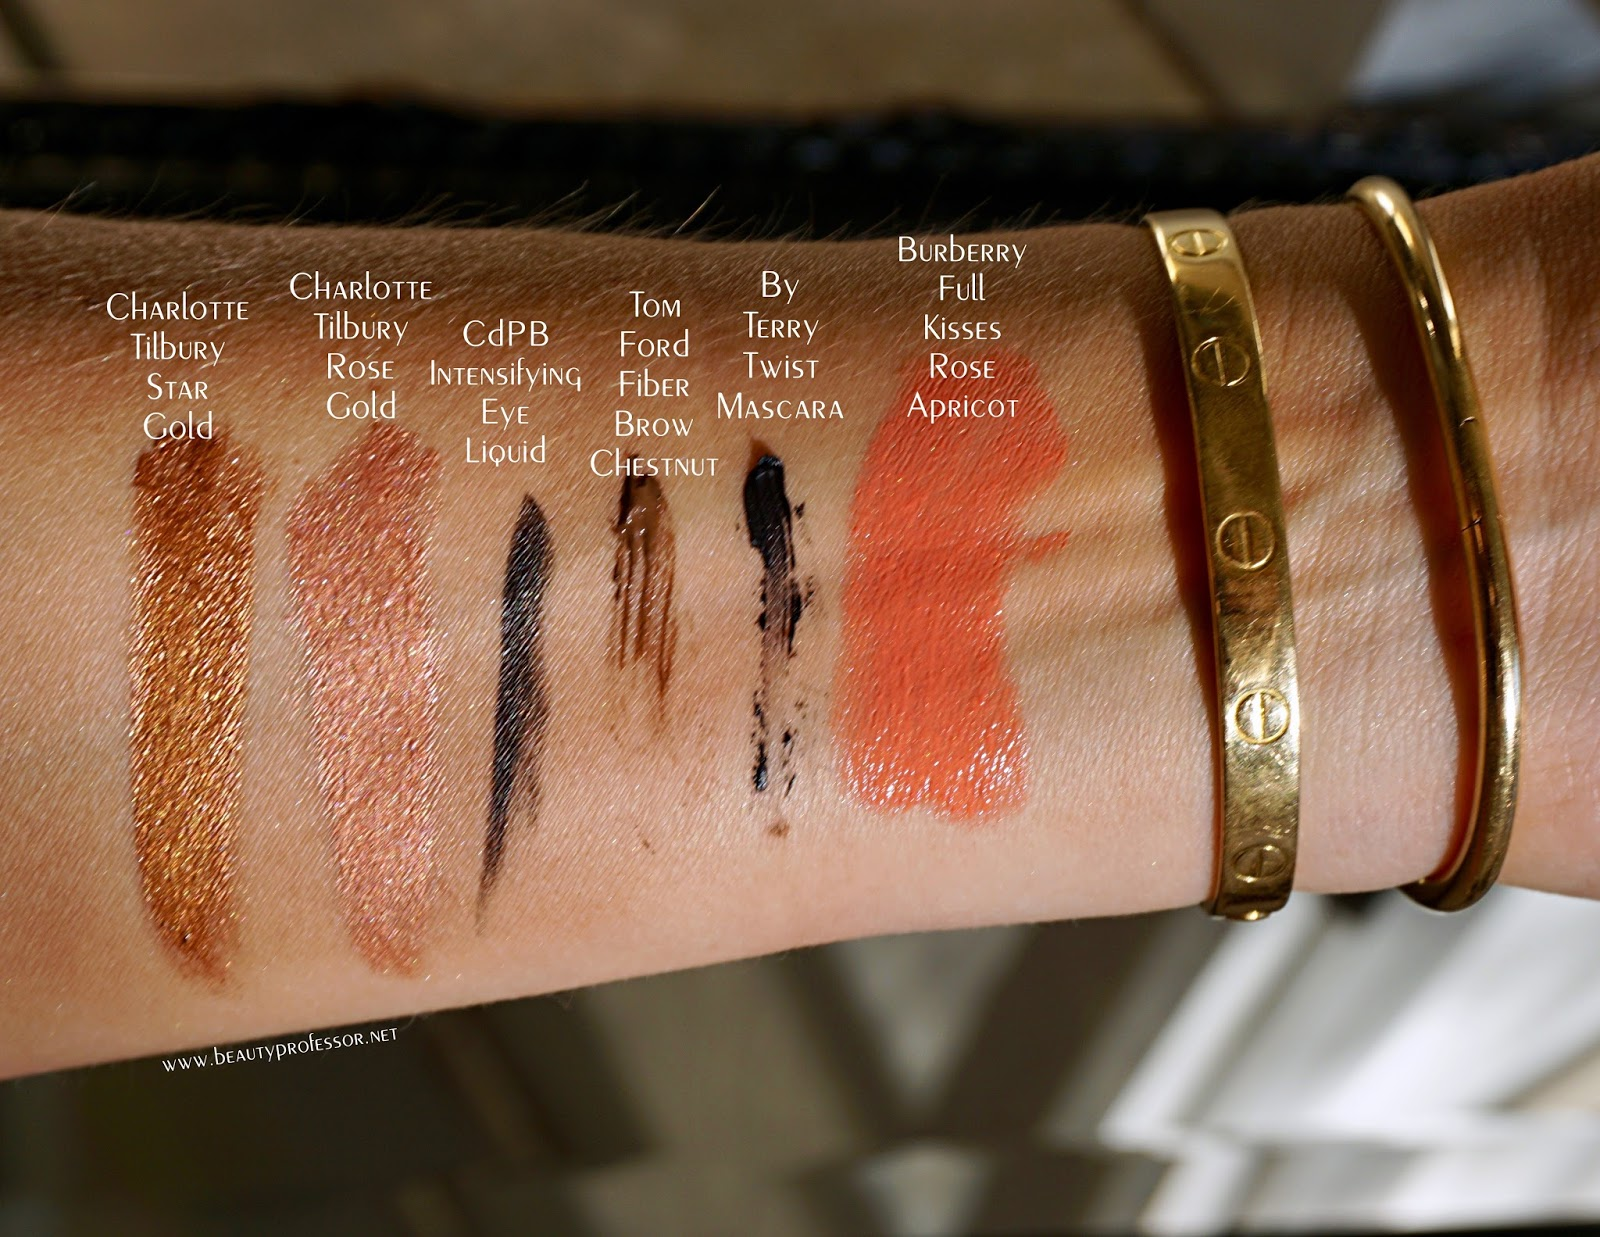 charlotte tilbury star gold rose gold swatches